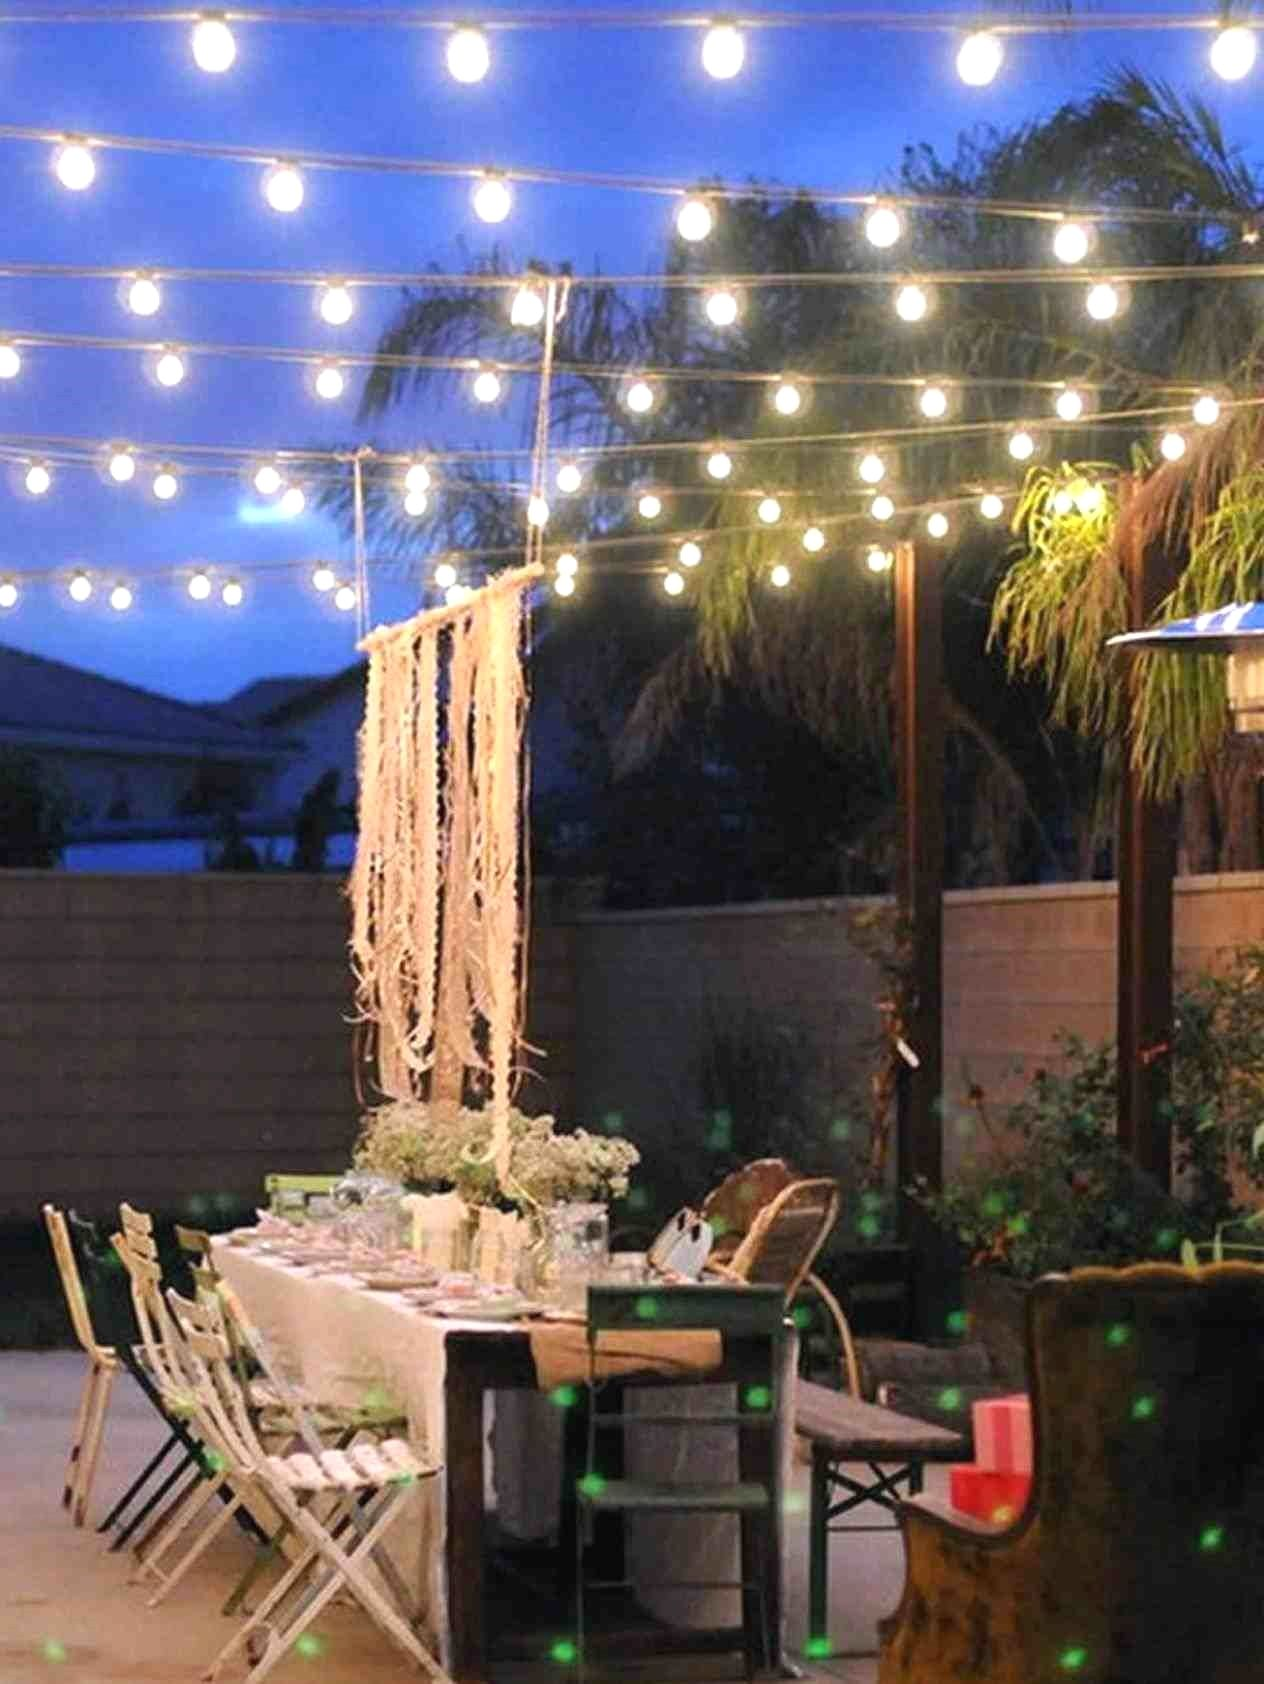 outside patio lights on 10 easy patio lighting ideas you can do for your backyard entertainment outdoor lighting design rustic outdoor decor backyard lighting 10 easy patio lighting ideas you can do